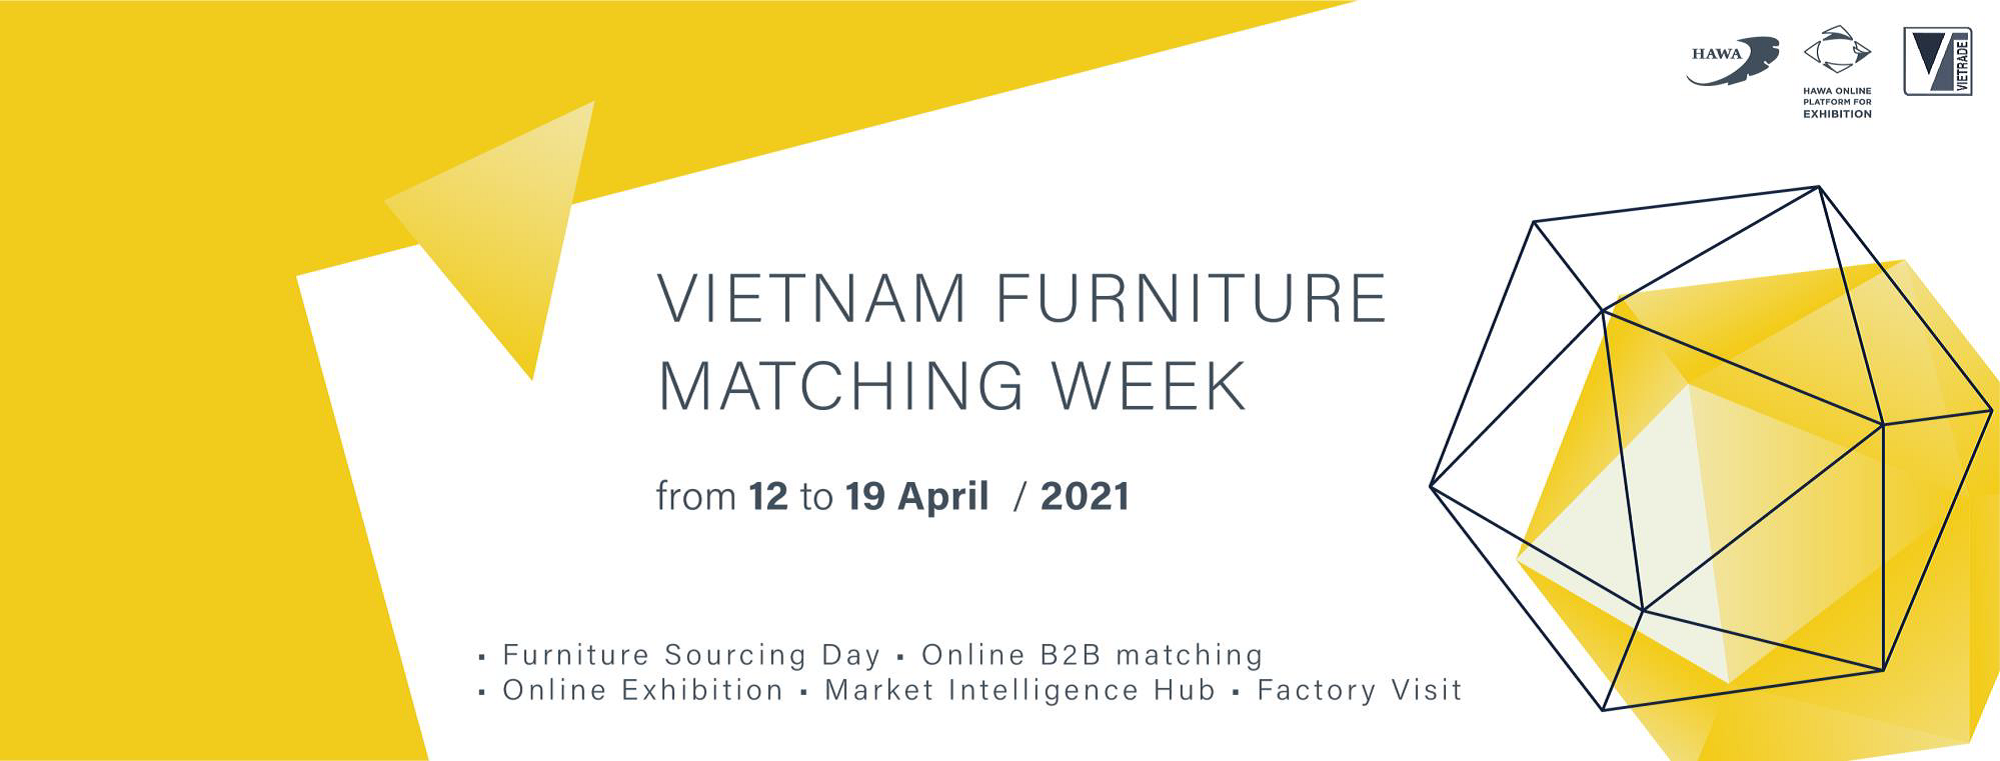 Vietnam Furniture Matching Week - Apr 12-19, 2021